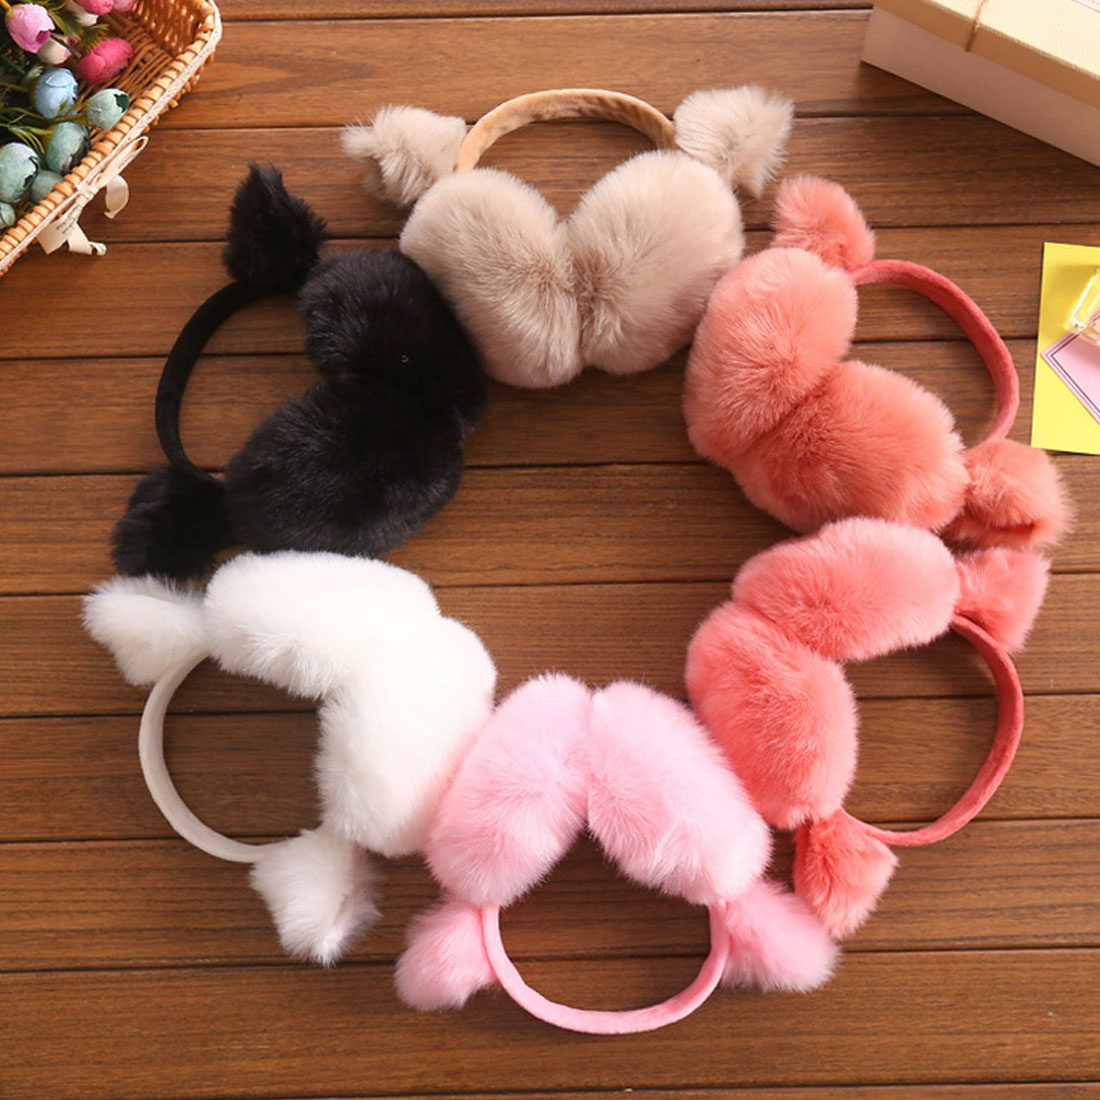 2018 Charming Fashion Rabbit Winter Earmuffs For Women Warm Fur Earmuffs Winter Ear Warmers Gifts For Girls Female